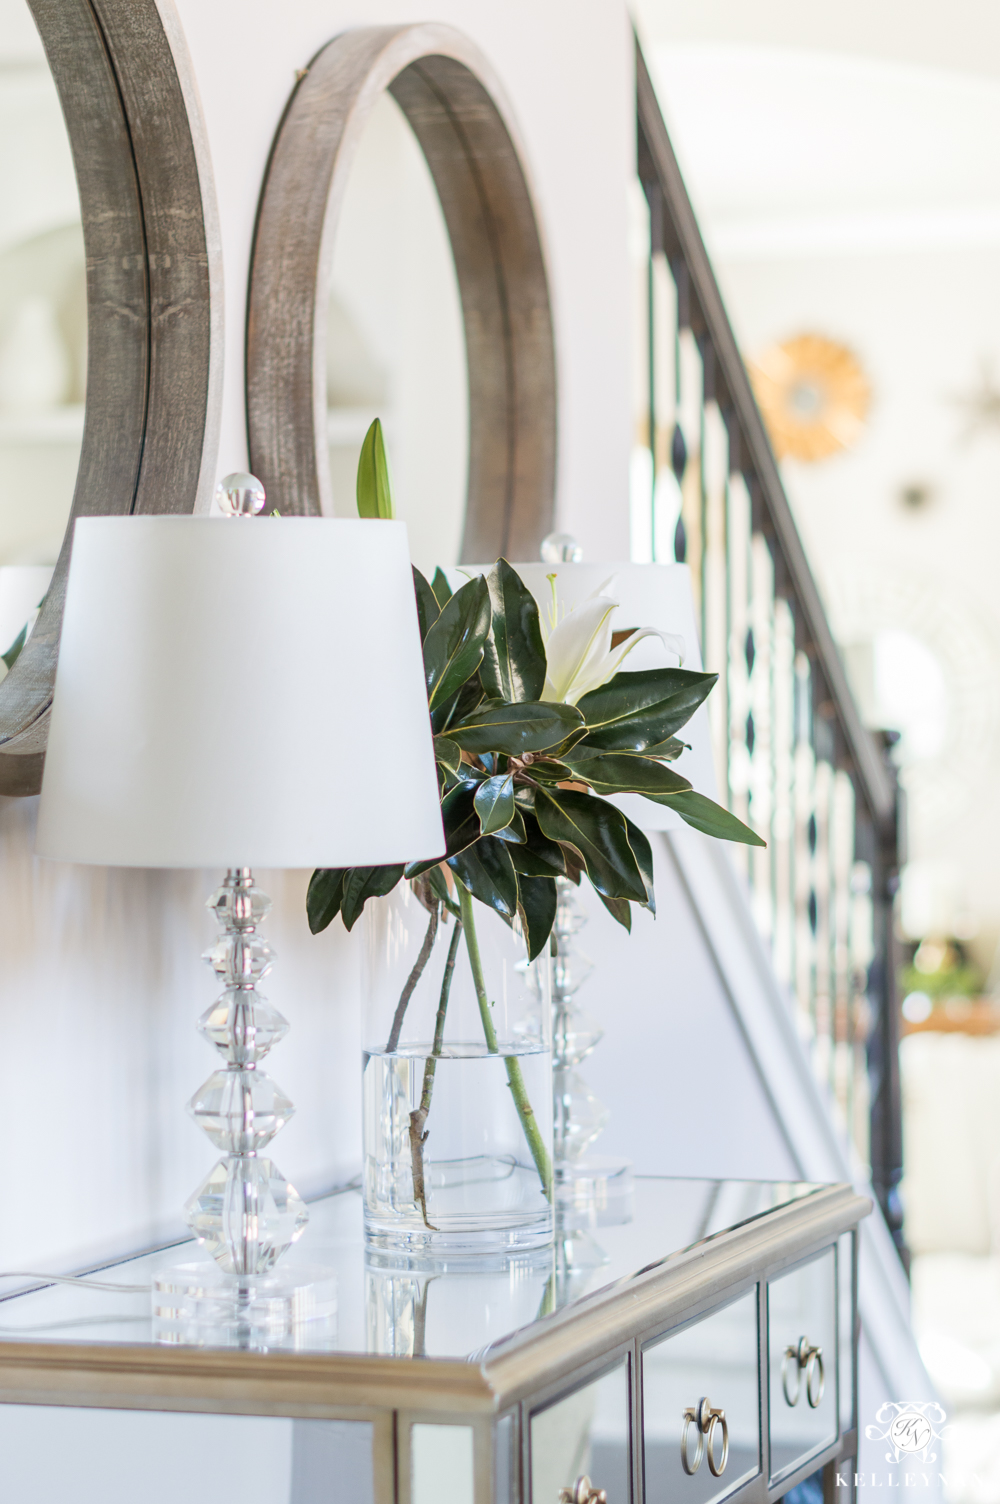 Console table styling ideas with lamps and vases